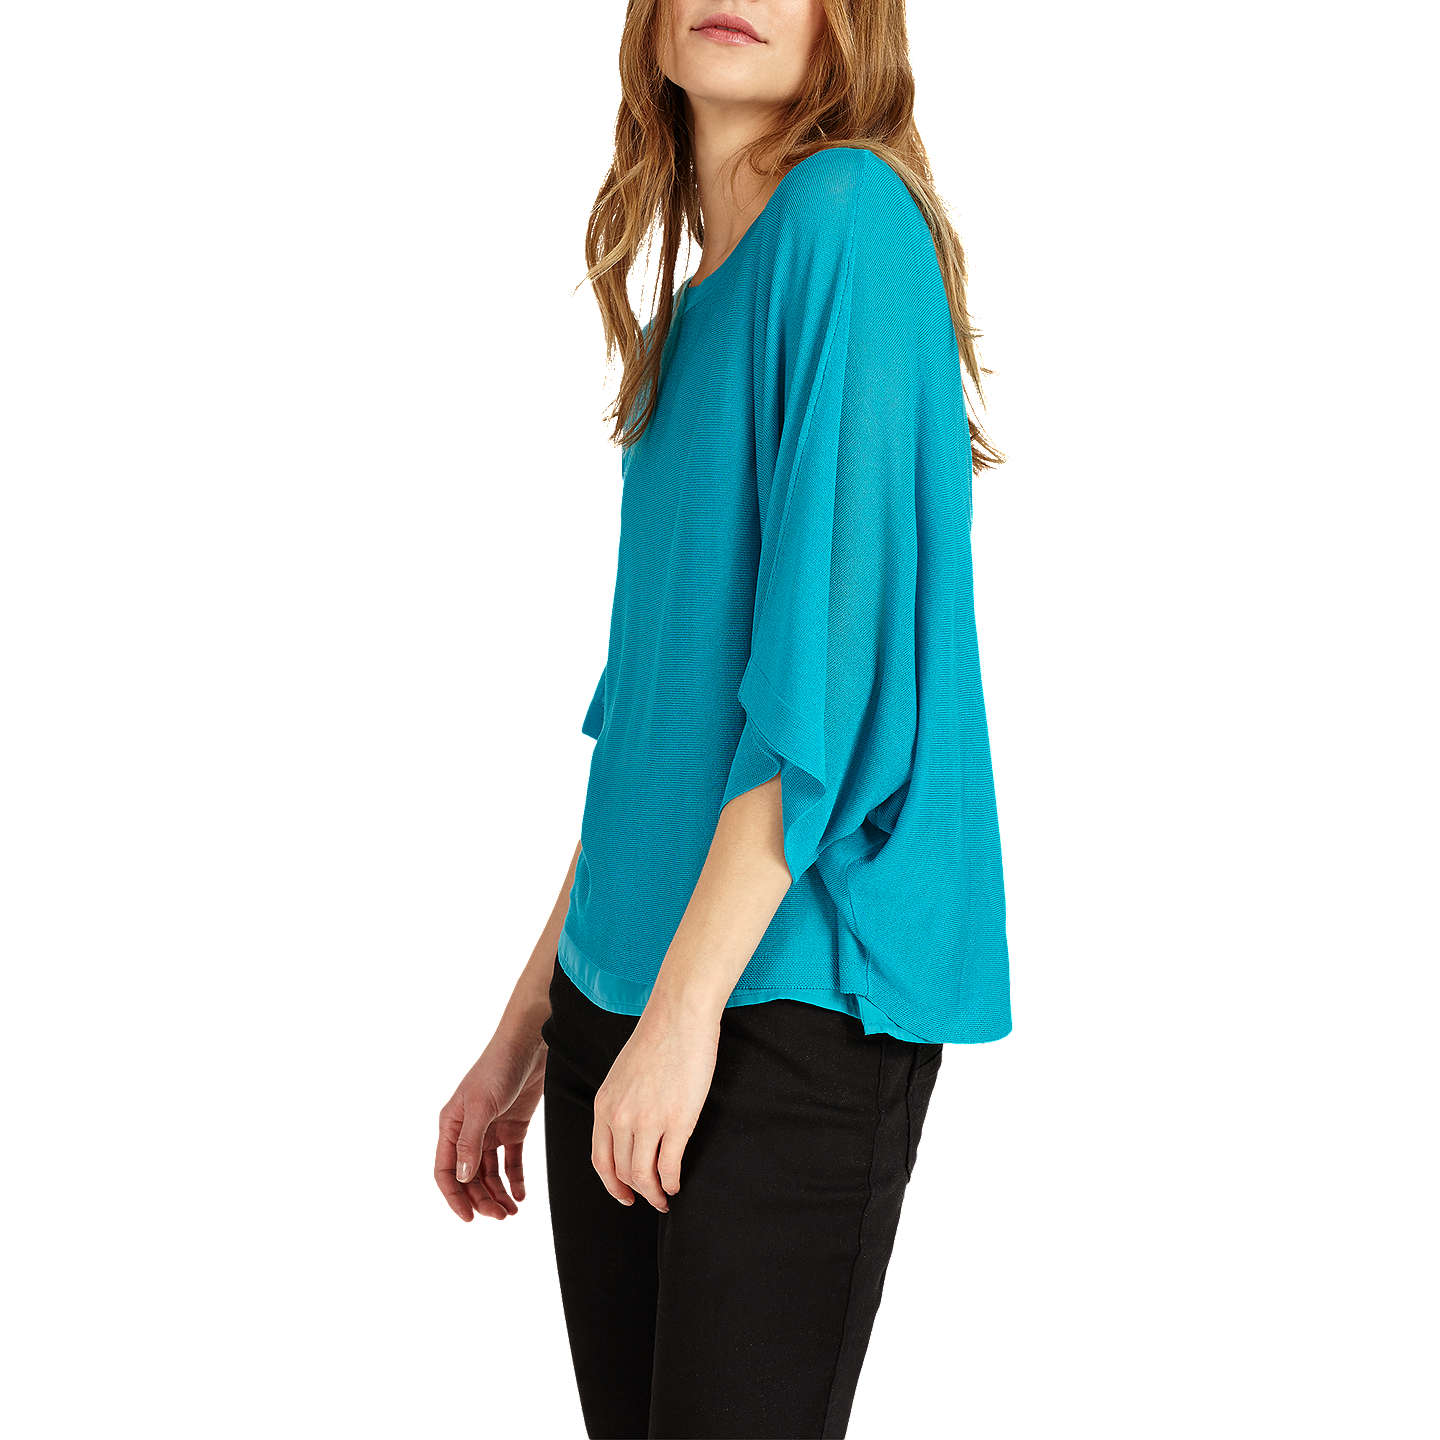 BuyPhase Eight Gisella Double Layer Jumper, Aqua, XS Online at johnlewis.com